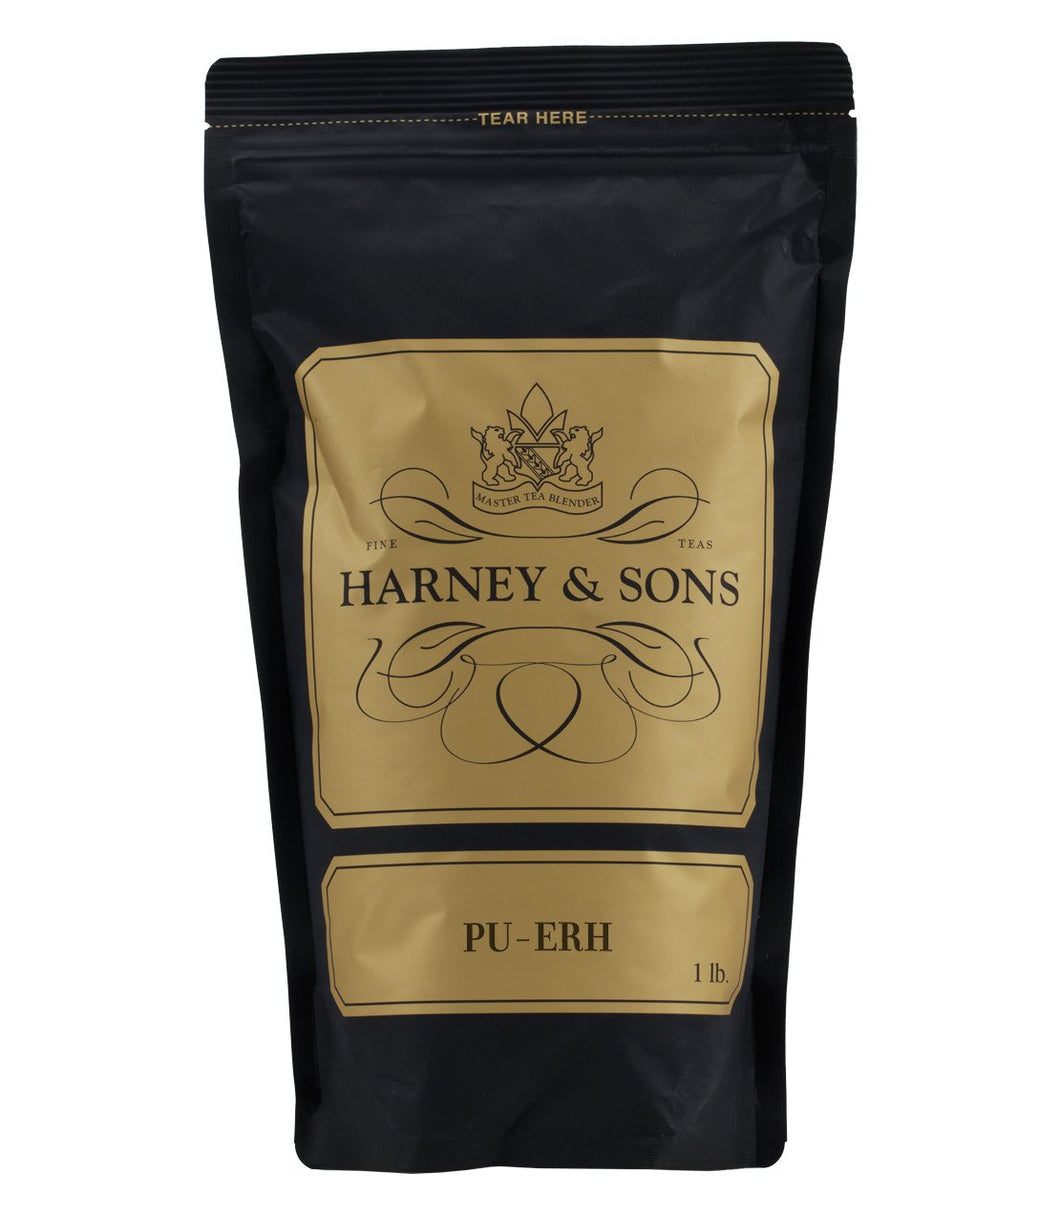 Harney & Sons - Pu erh [Loose]